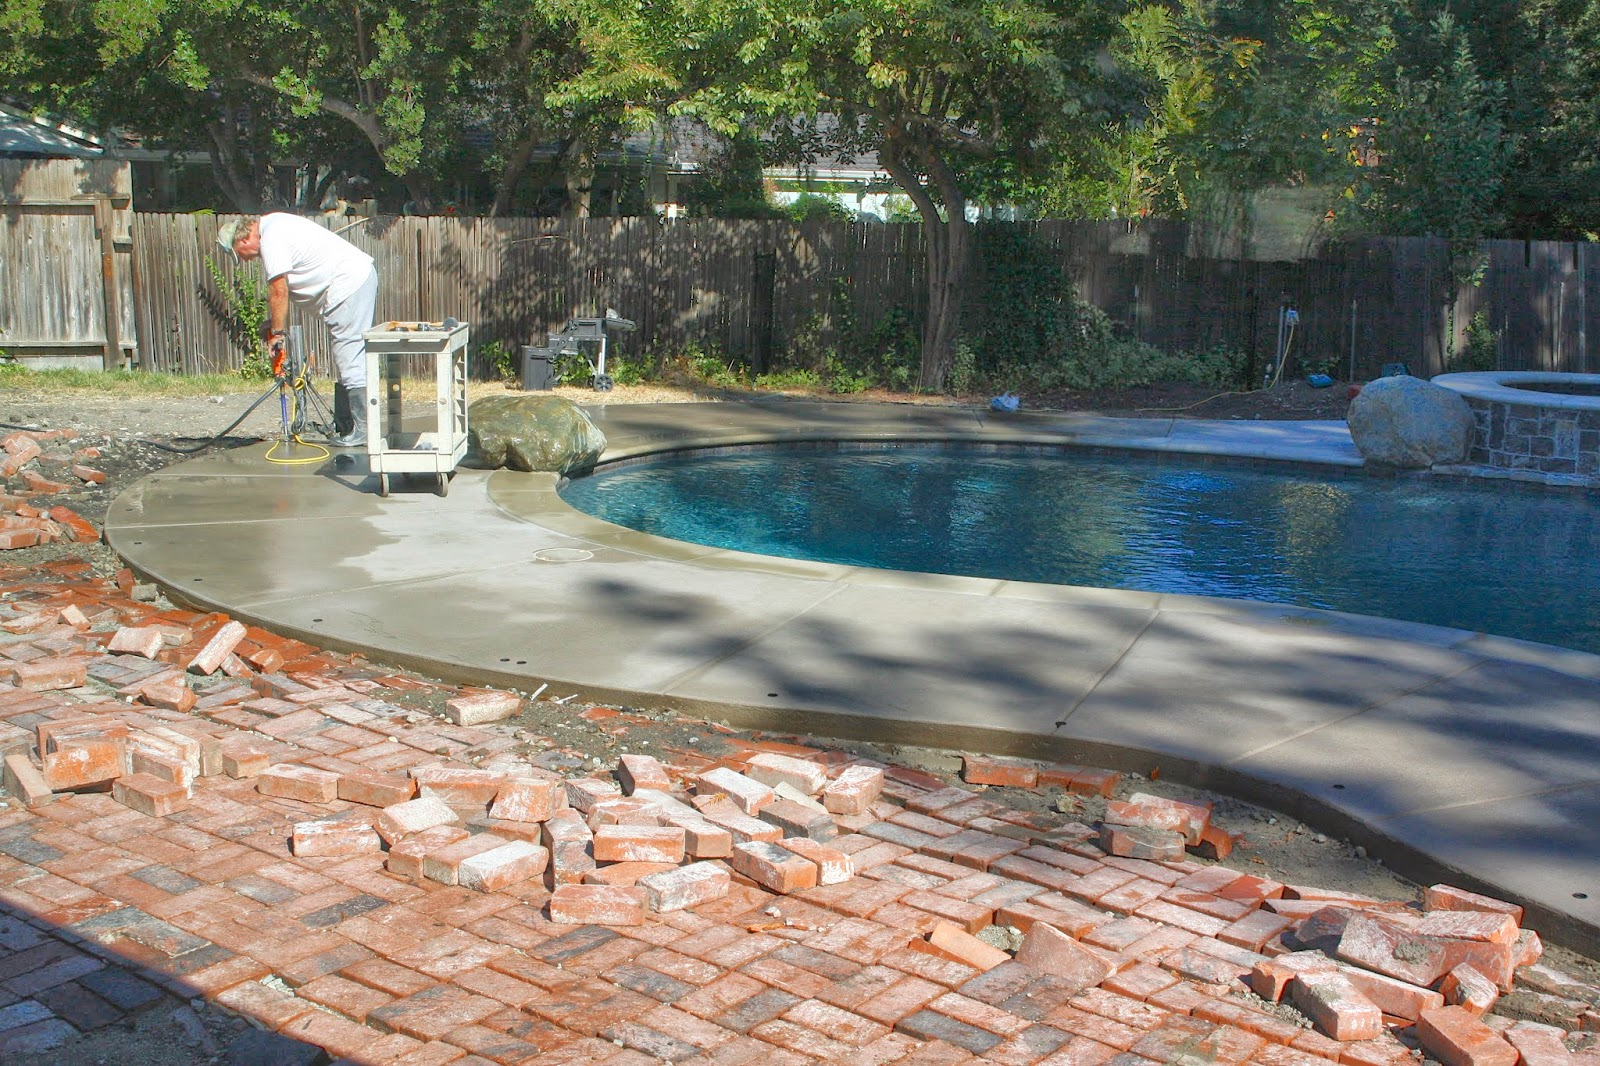 Brick Pool Deck Backyard Update Pool Fence & Brick Patio Completed  Simply Organized